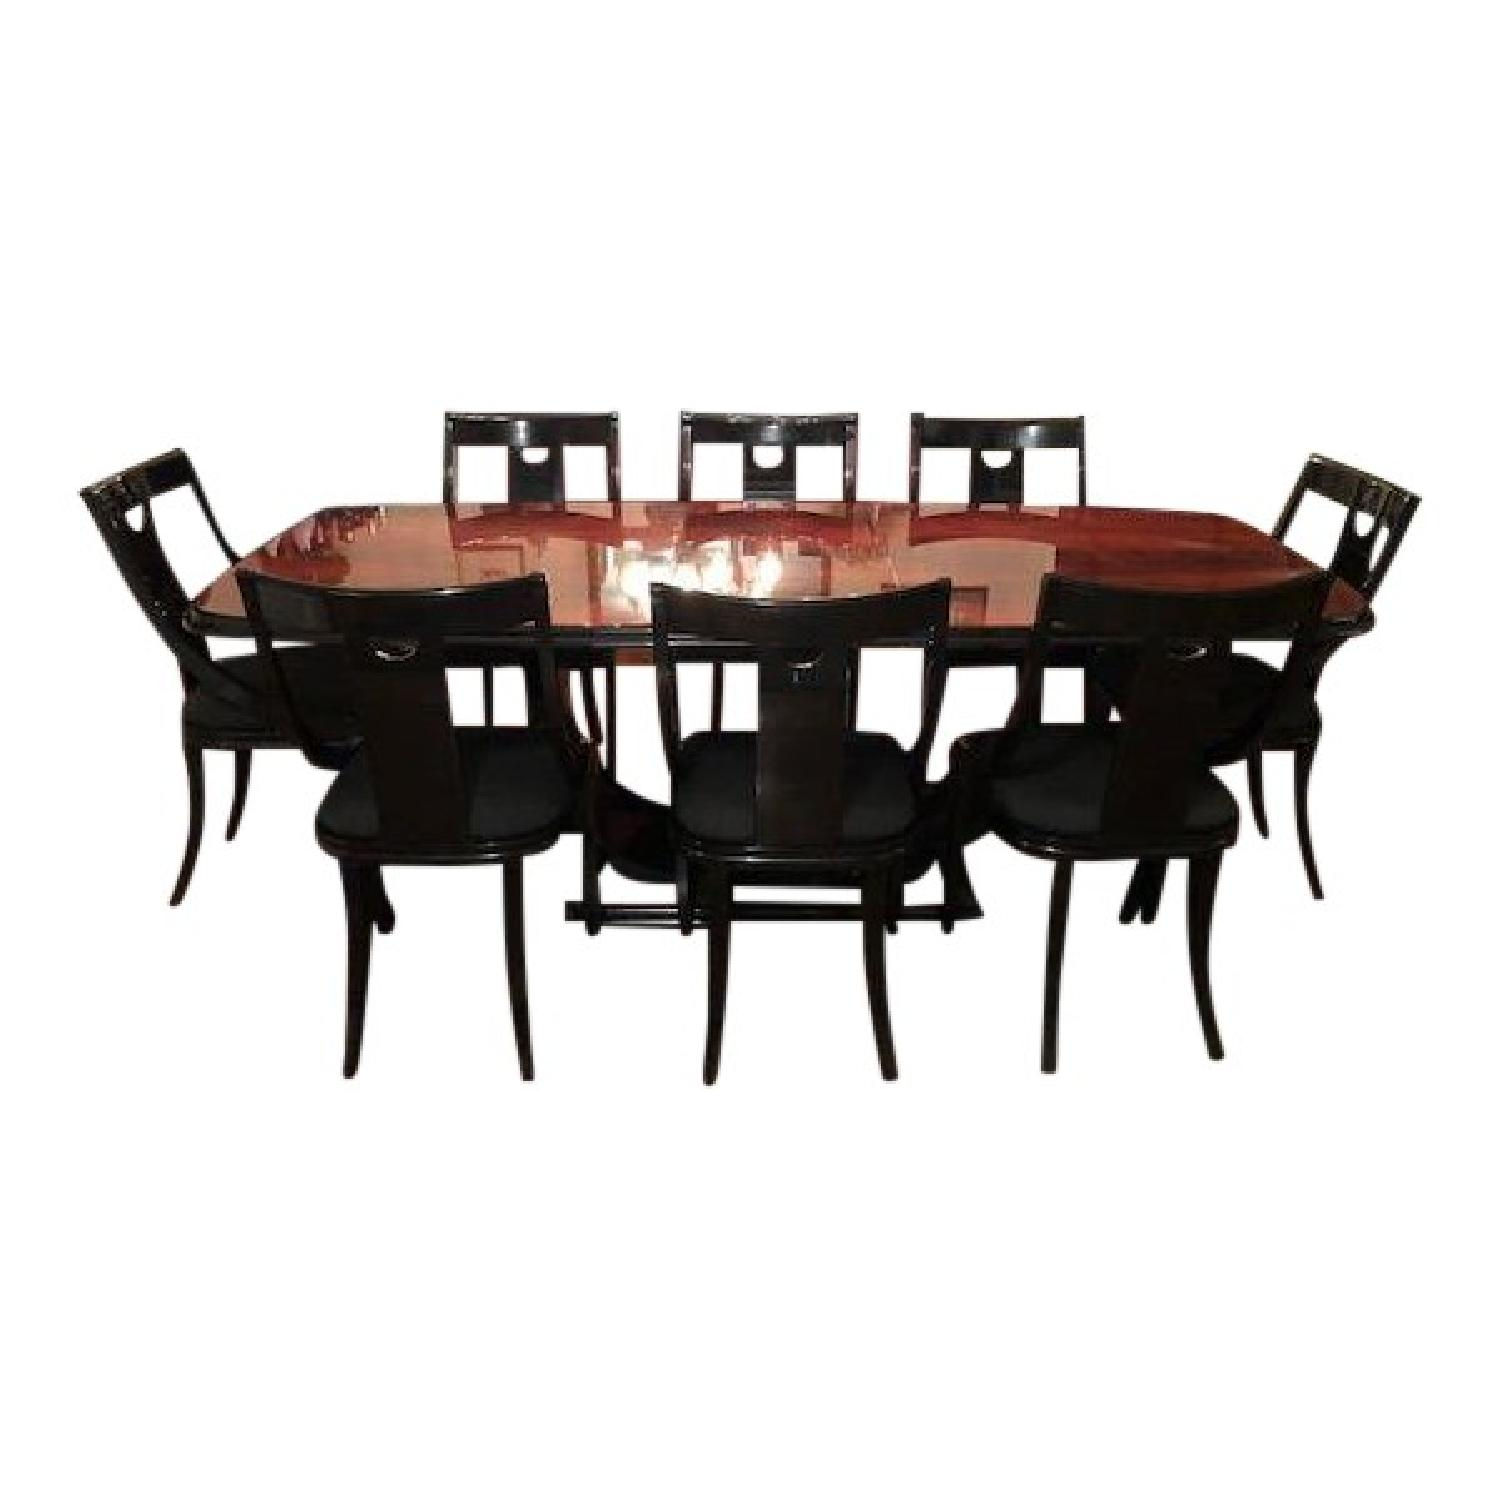 Art Deco Burlwood Dining Table w/ 8 Chairs